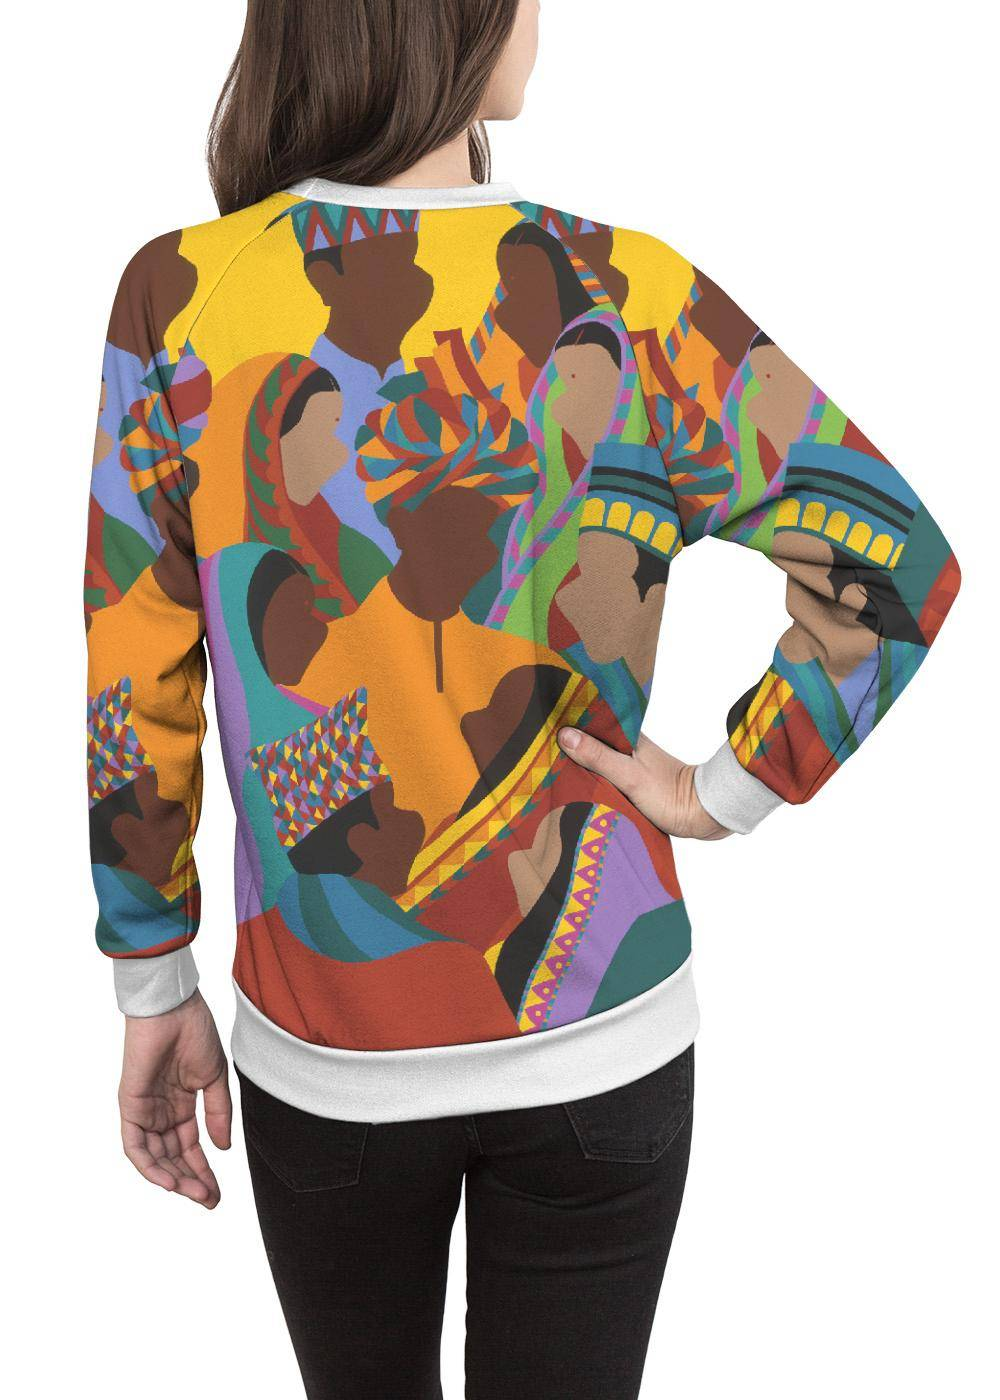 Synthia Saint James Women's Crewneck Sweatshirt - Diwali by Synthia Saint James Original Artist  - Size: Large